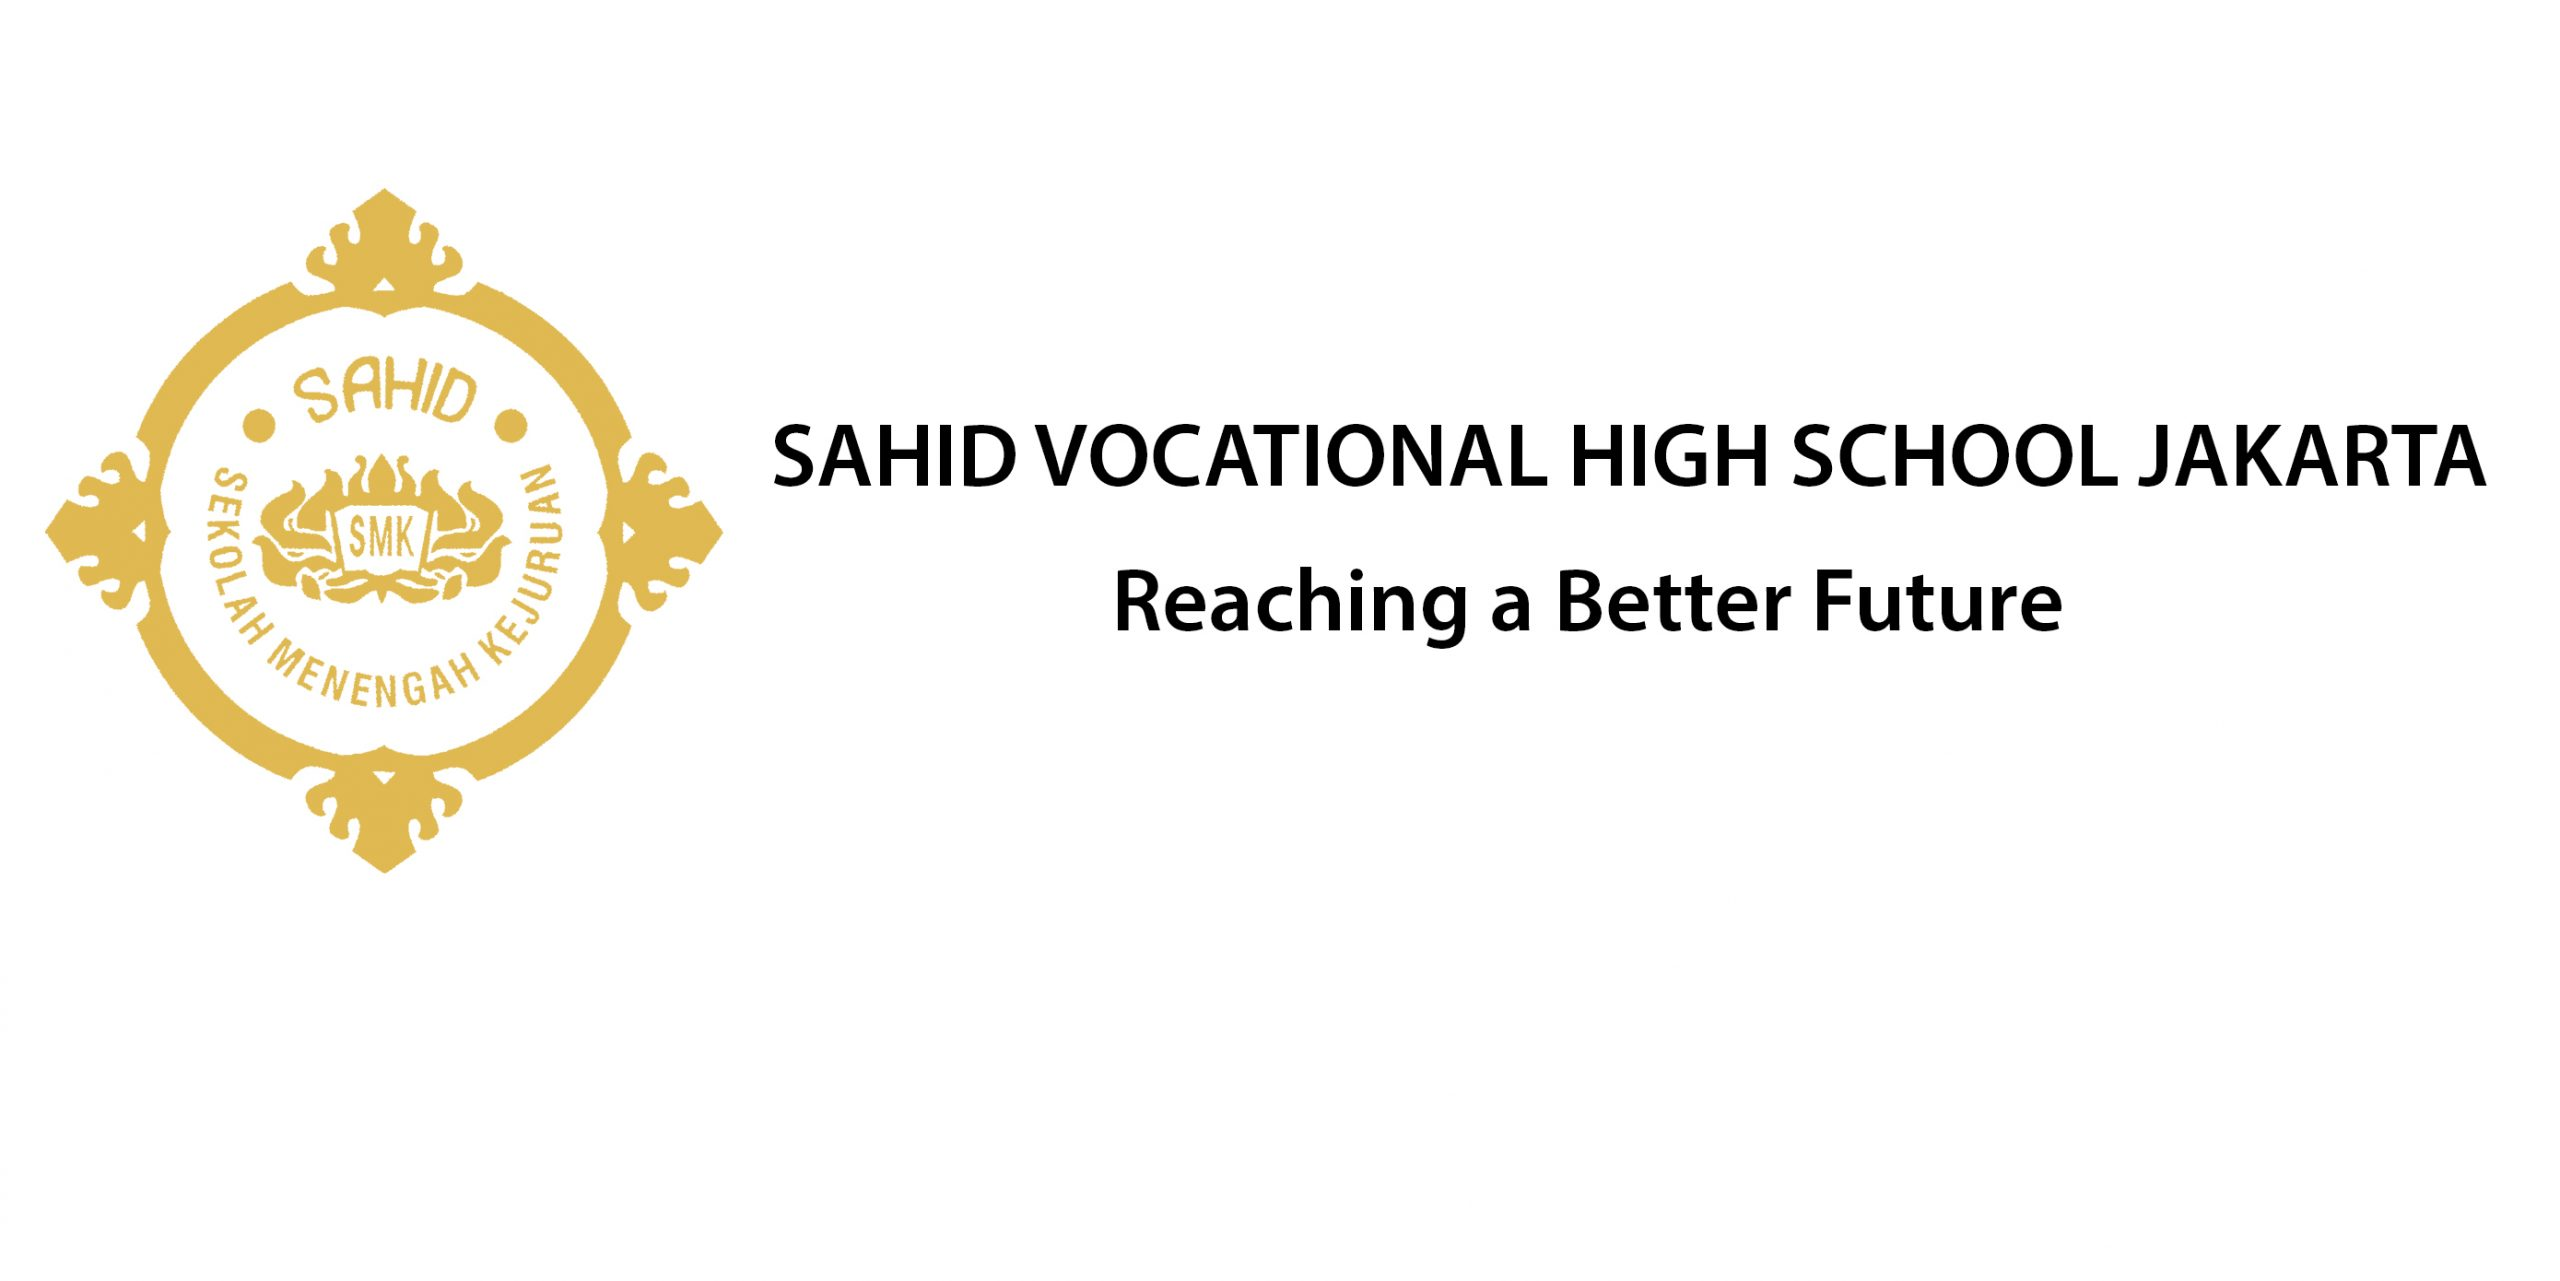 SAHID VOCATIONAL HIGH SCHOOL JAKARTA